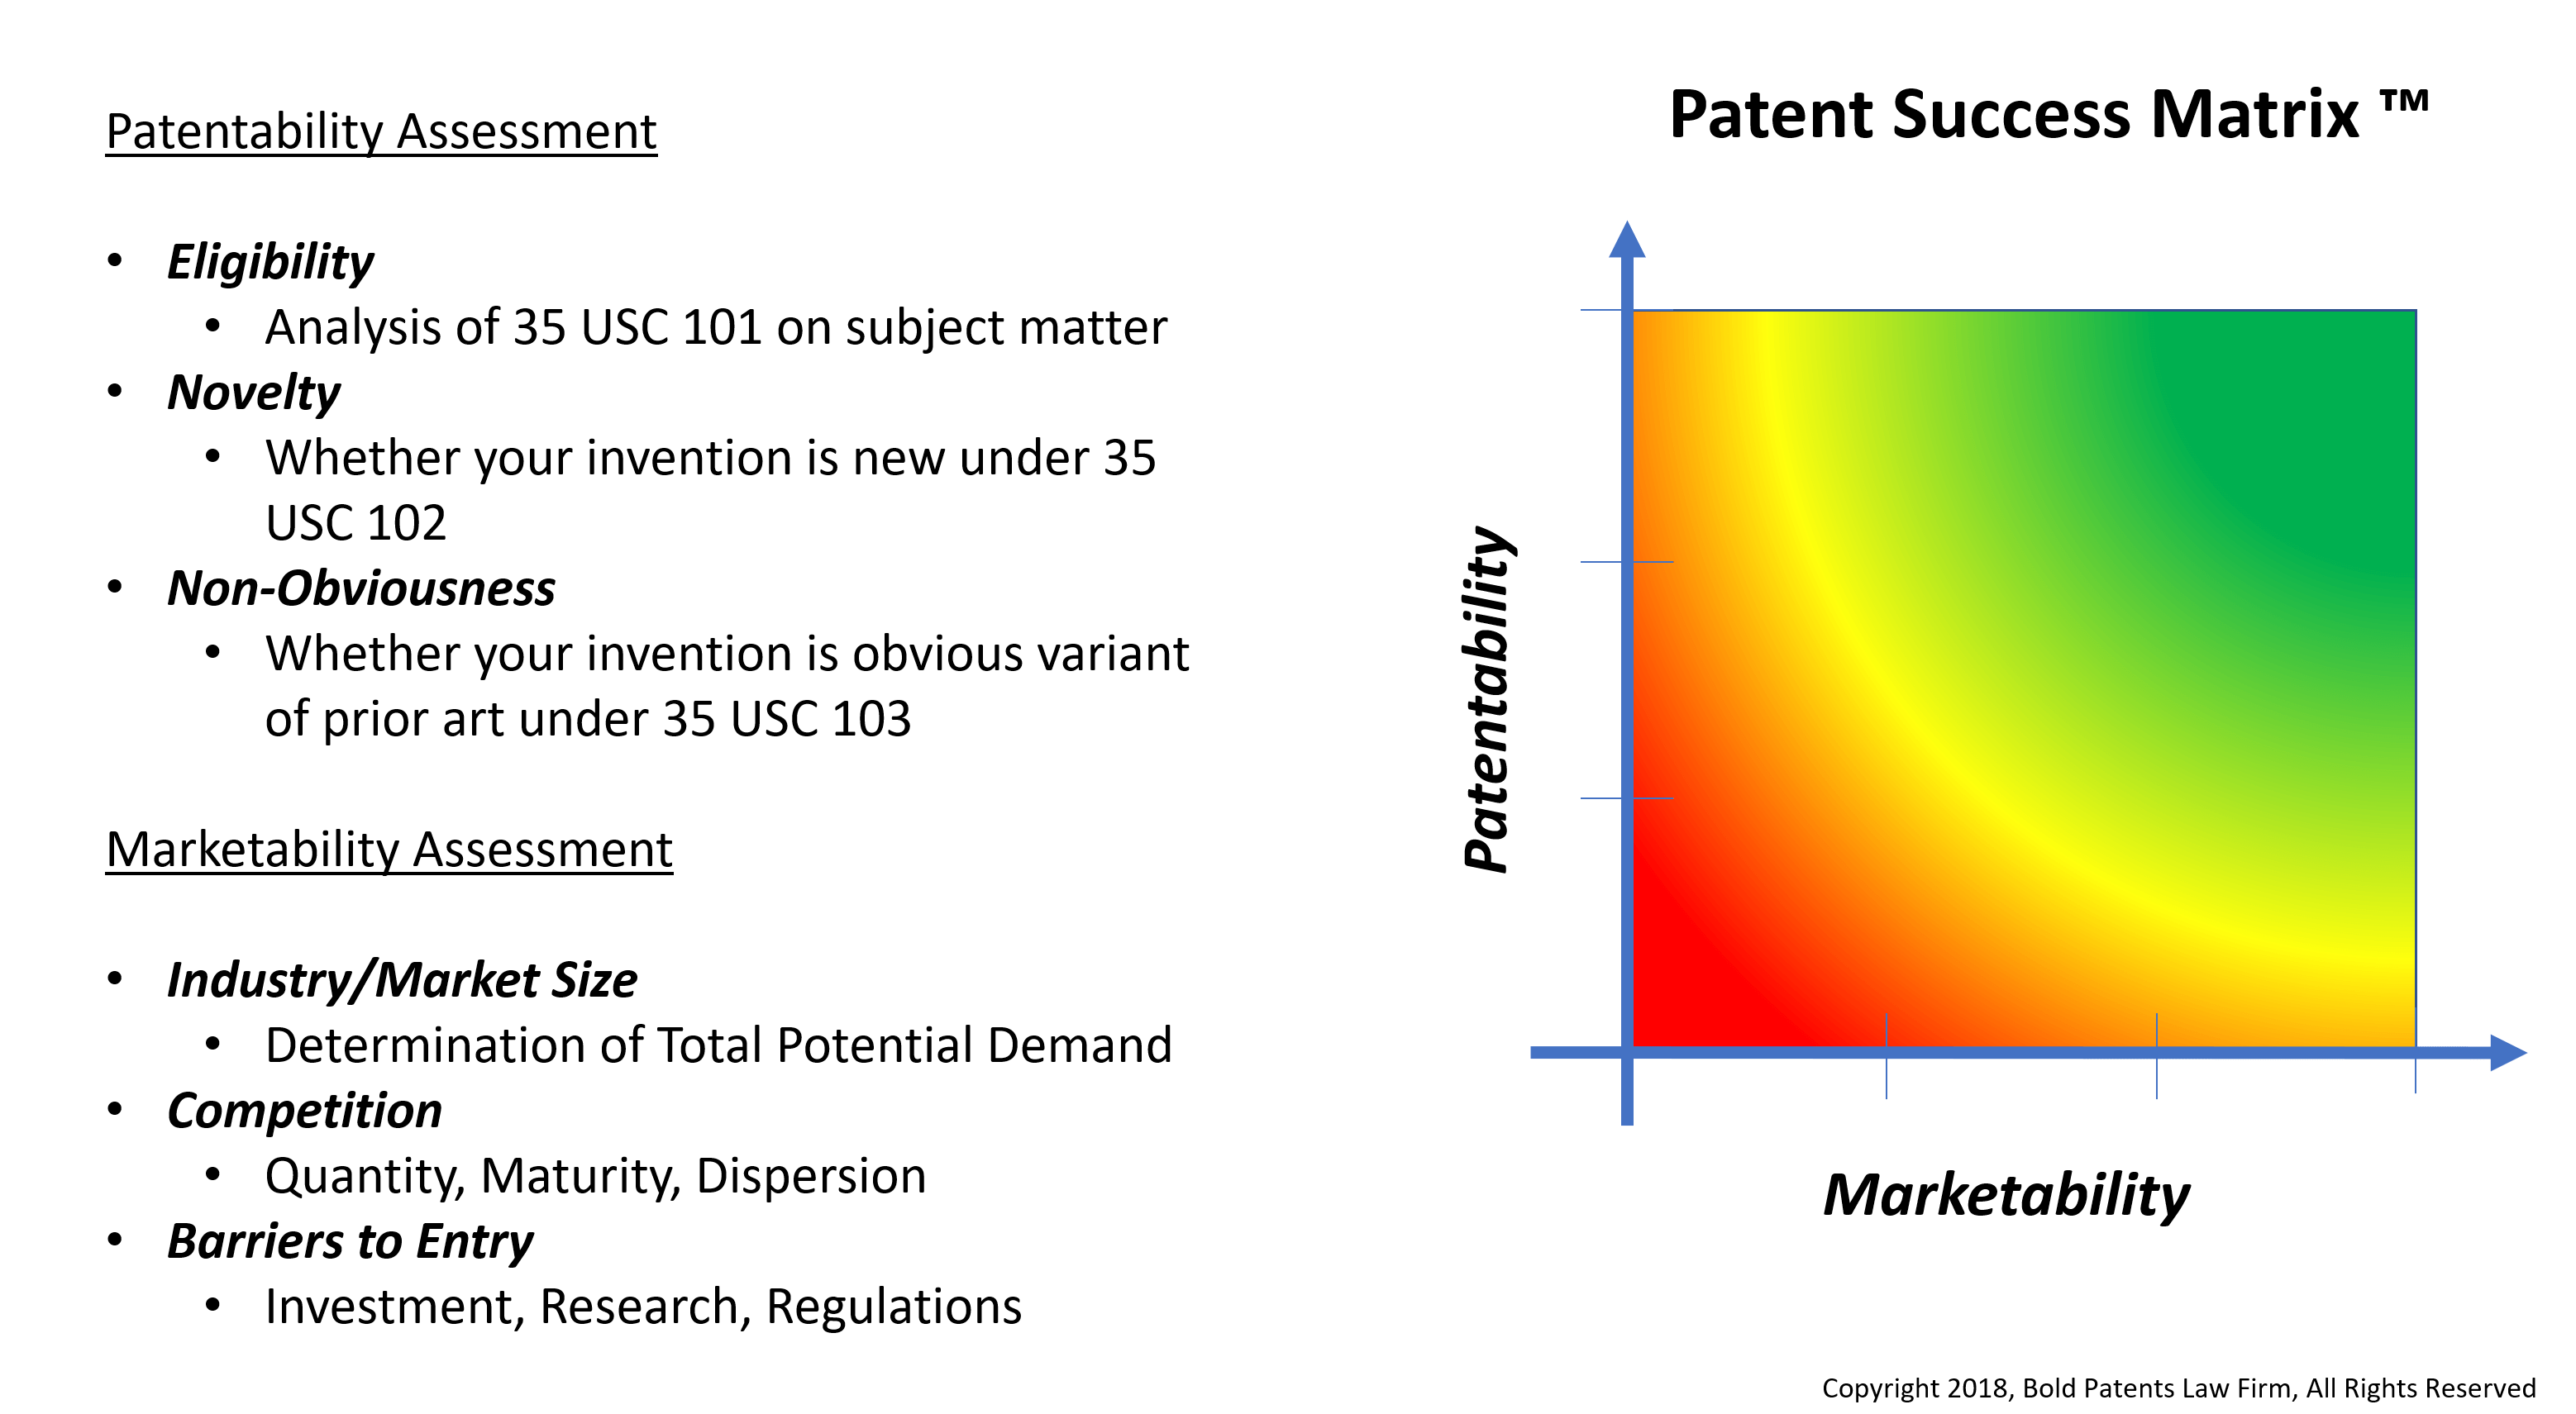 Patent search patentability & marketability